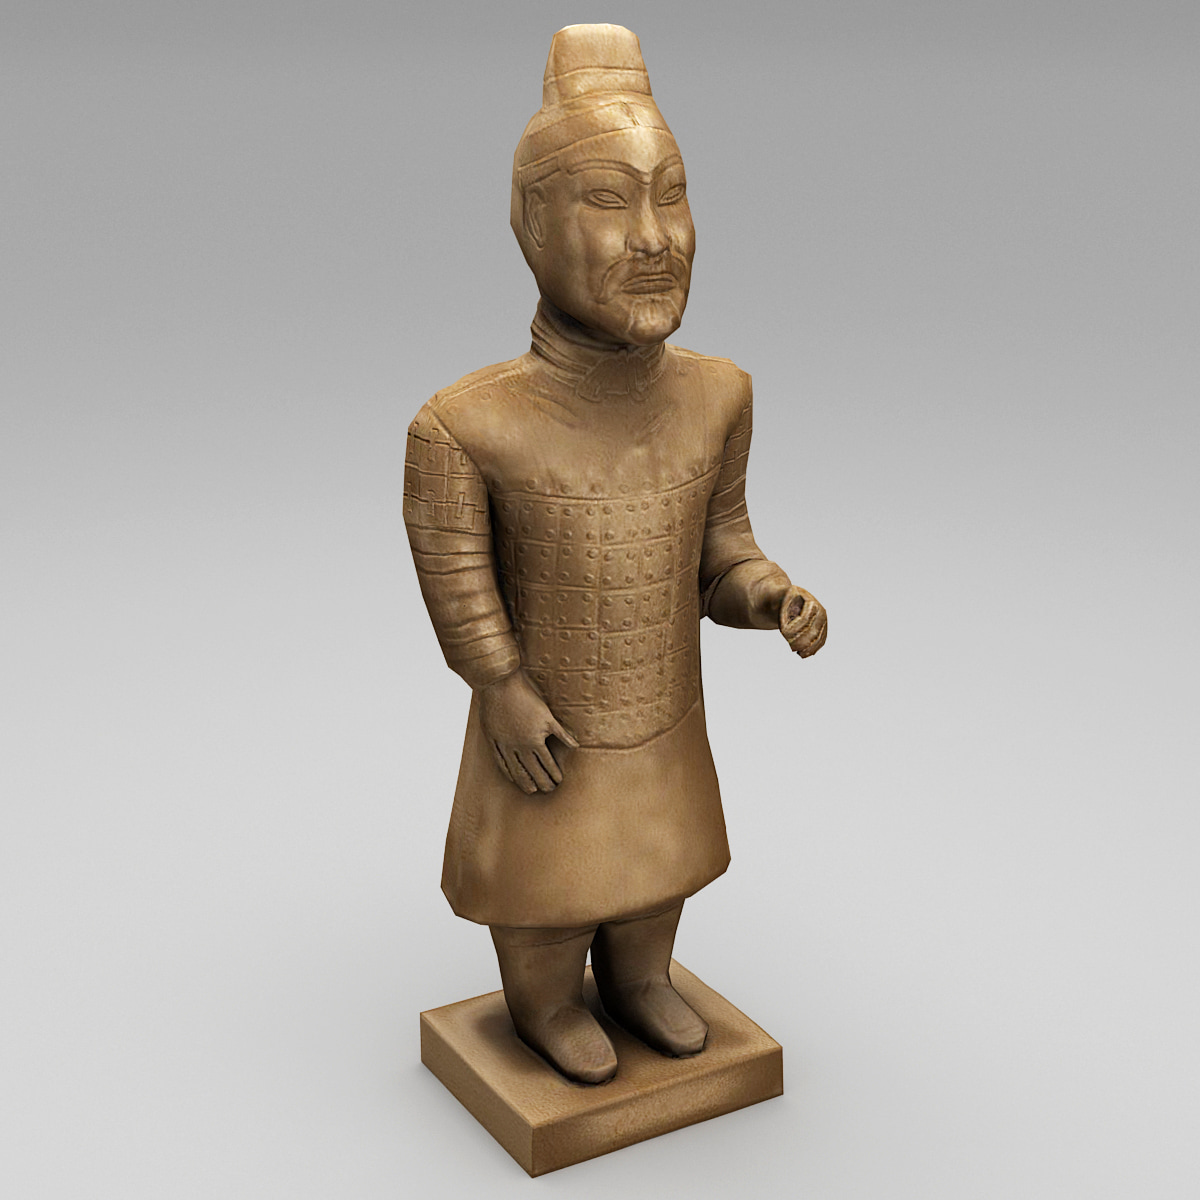 China_Terracotta_Warrior_V2_0001.jpg